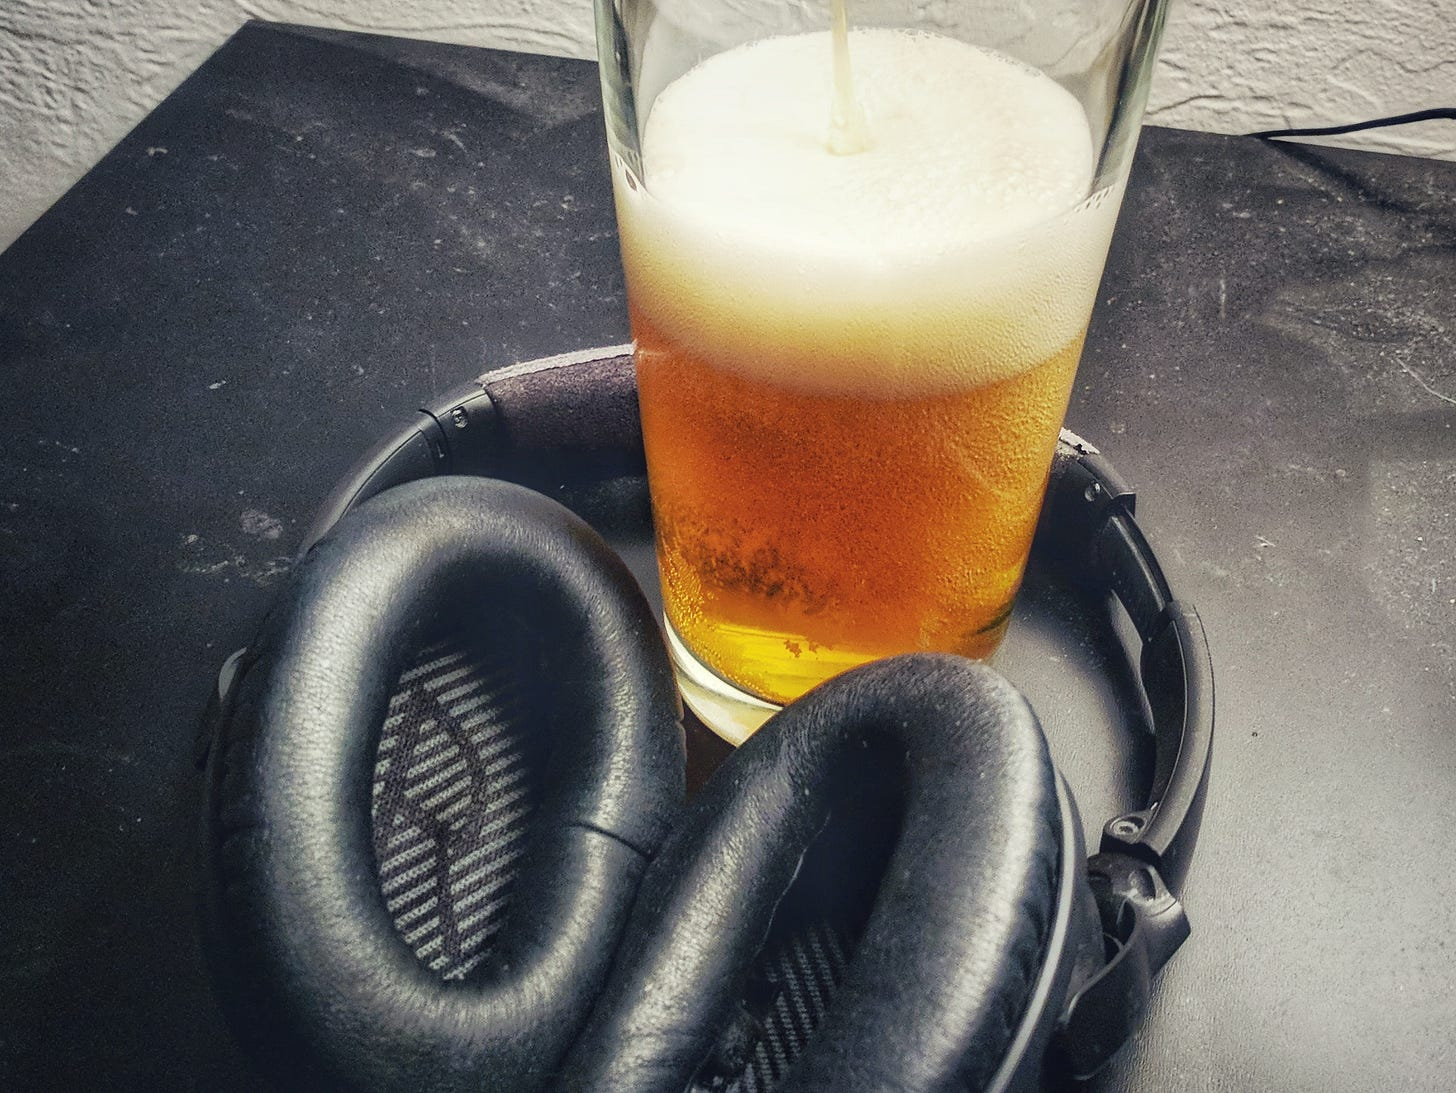 Beer for Ears: The World of Craft Beer ASMR – The Thirsty Wench